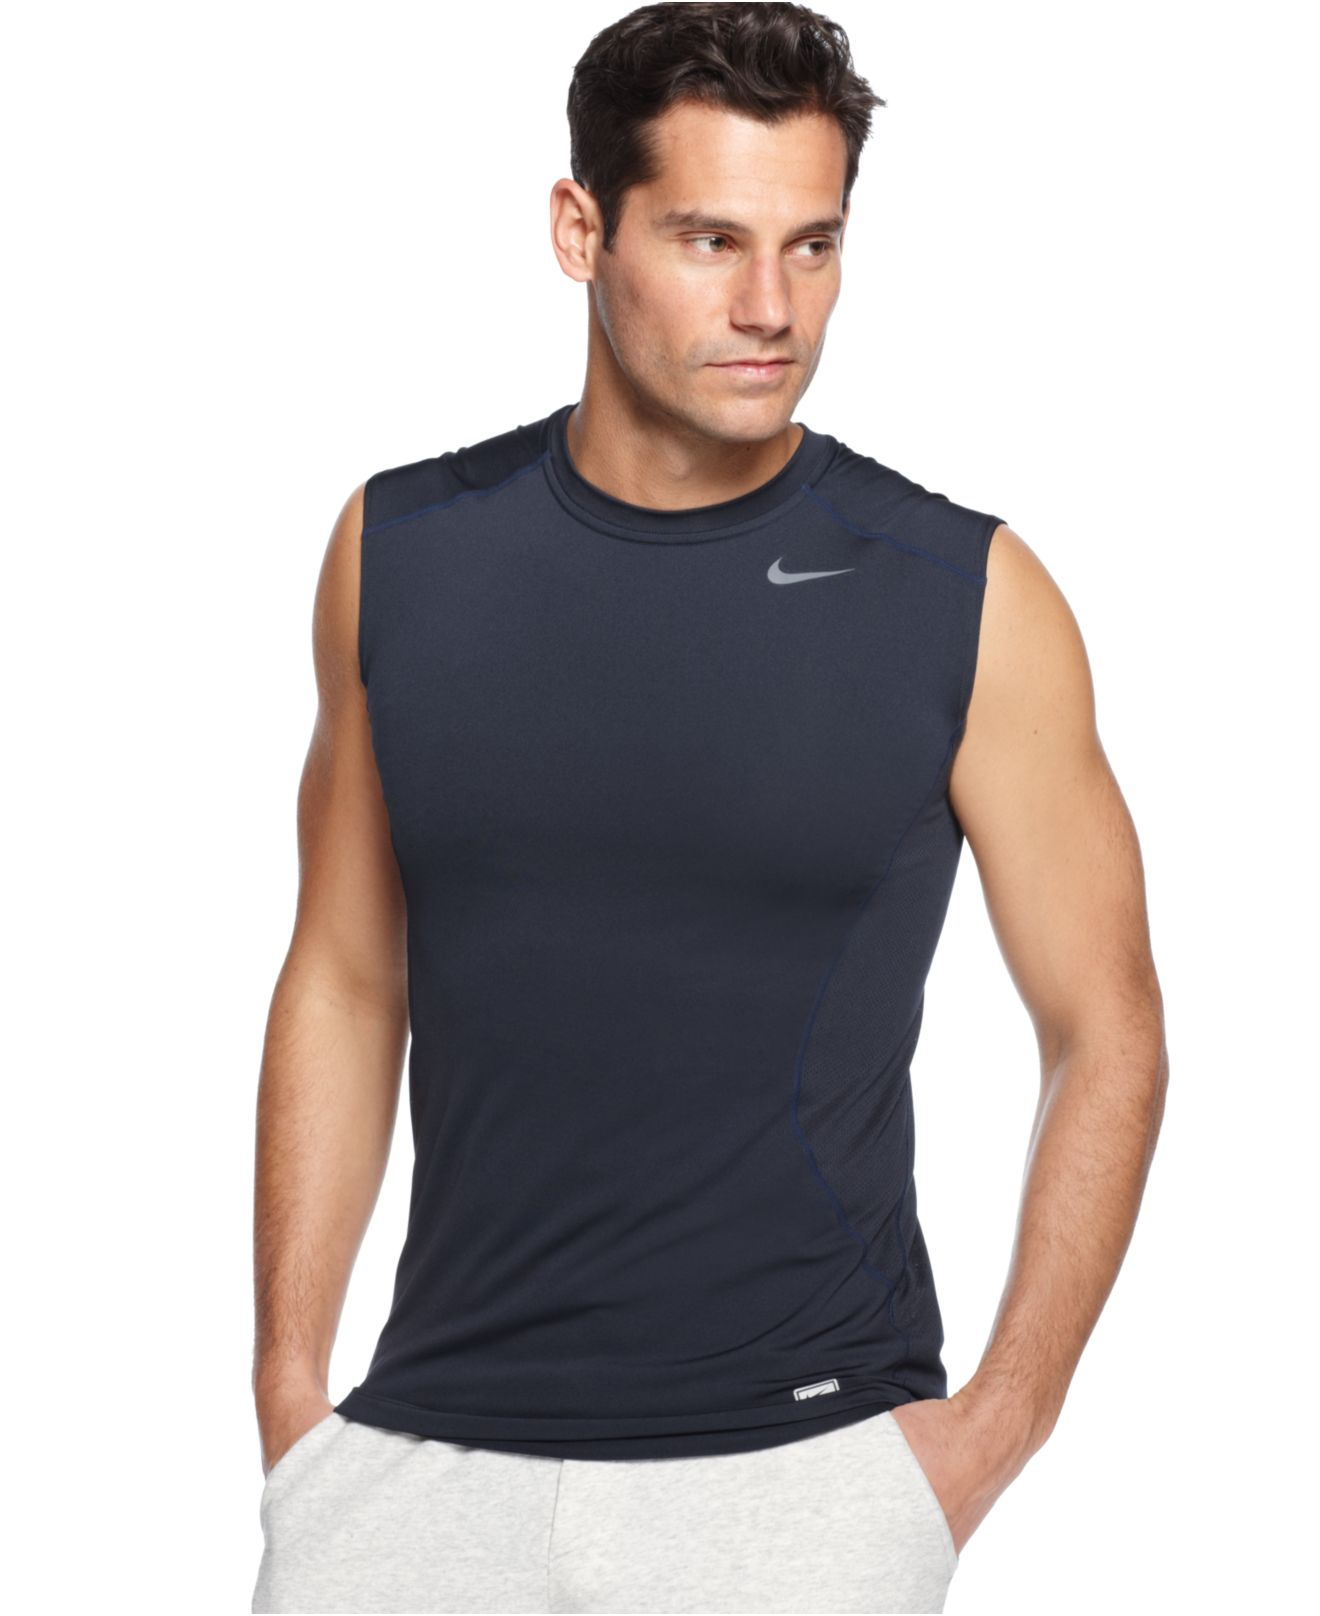 Nike Pro Combat Dri Fit Fitted Sleeveless Tee In Black For